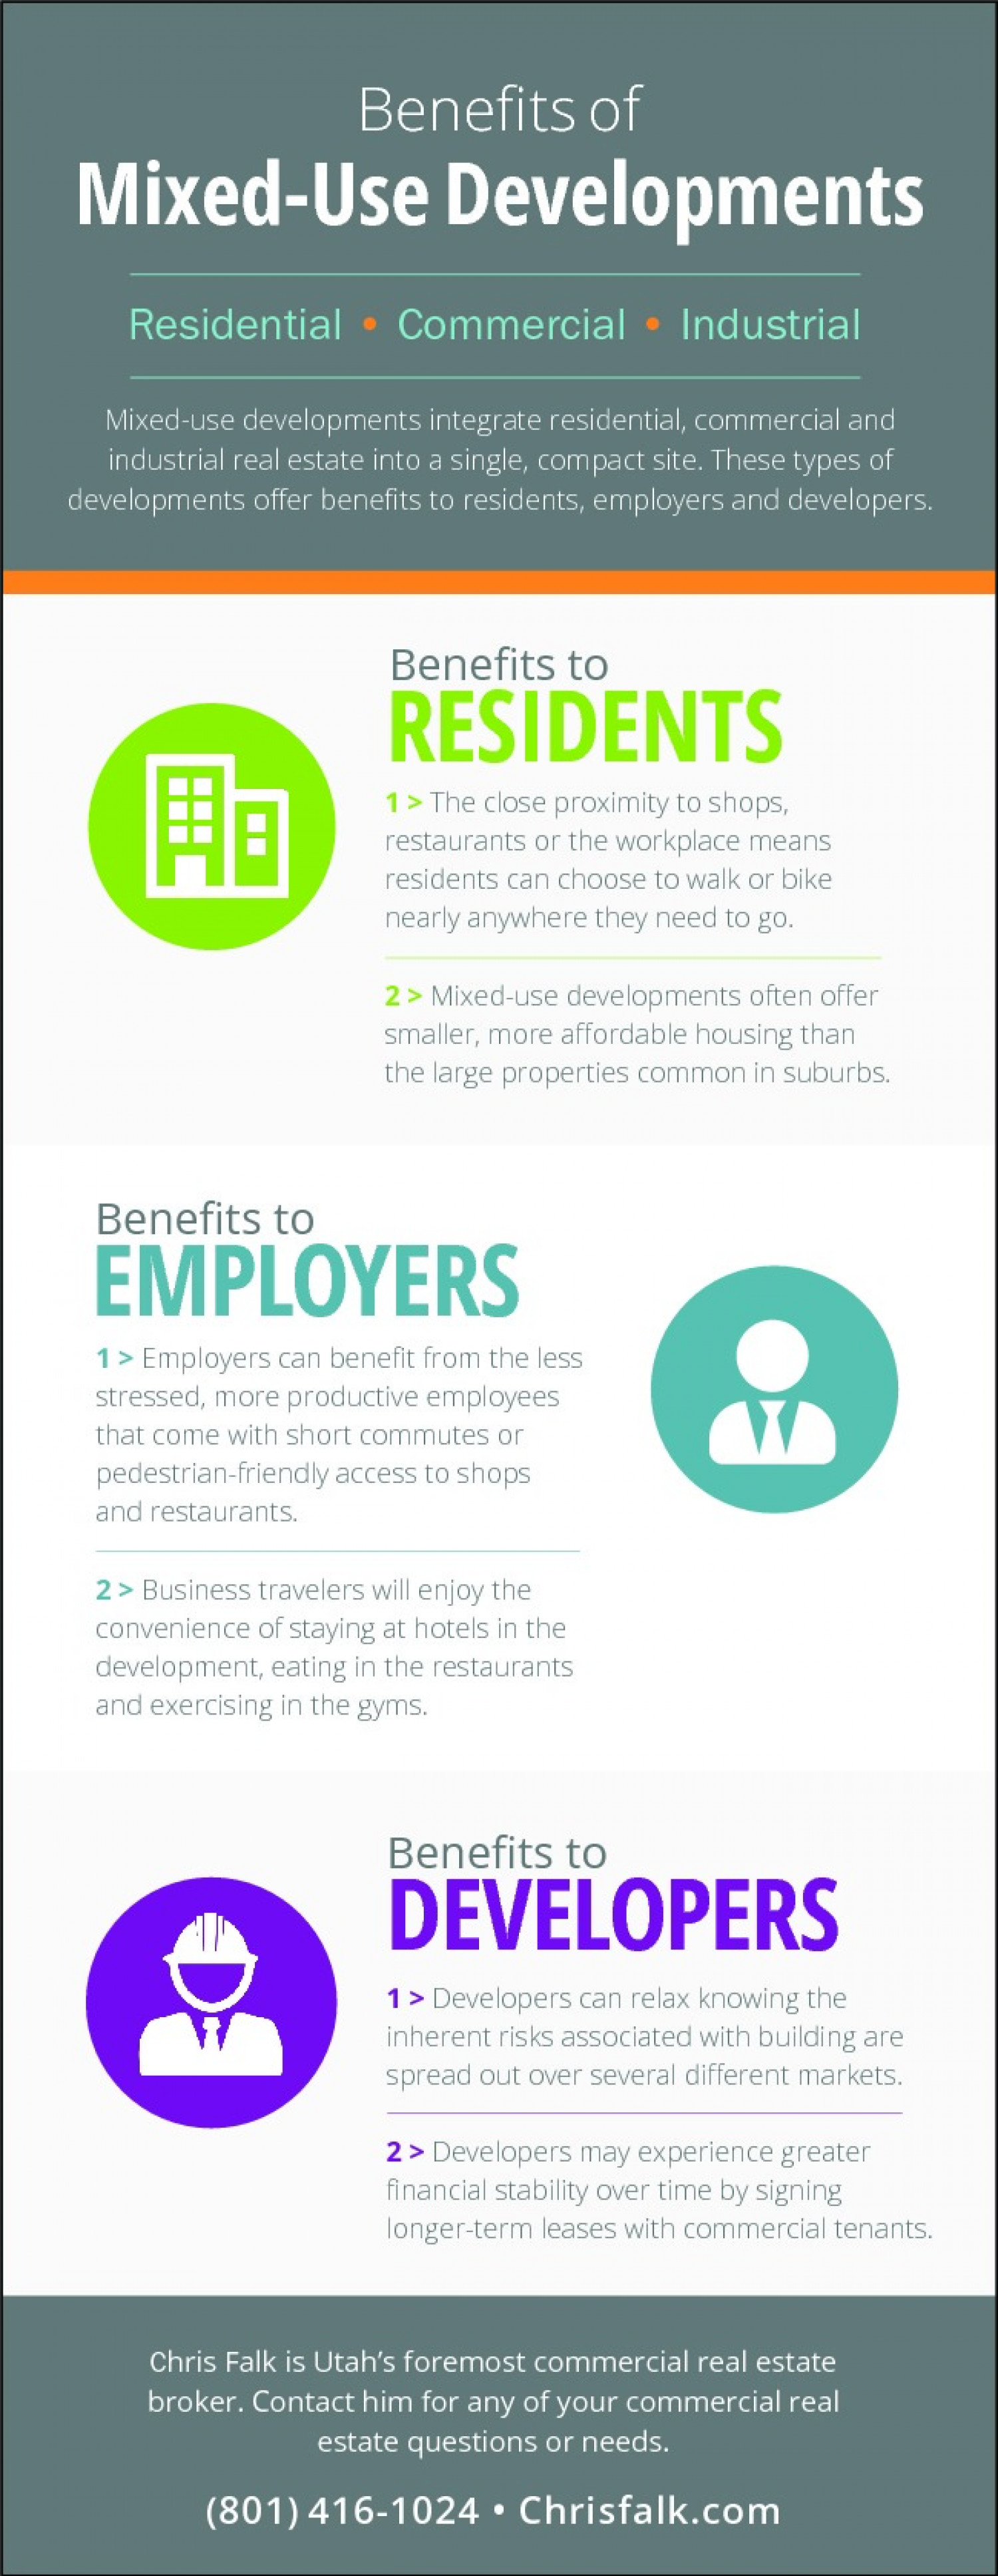 Benefits of Mixed-Use Developments Infographic